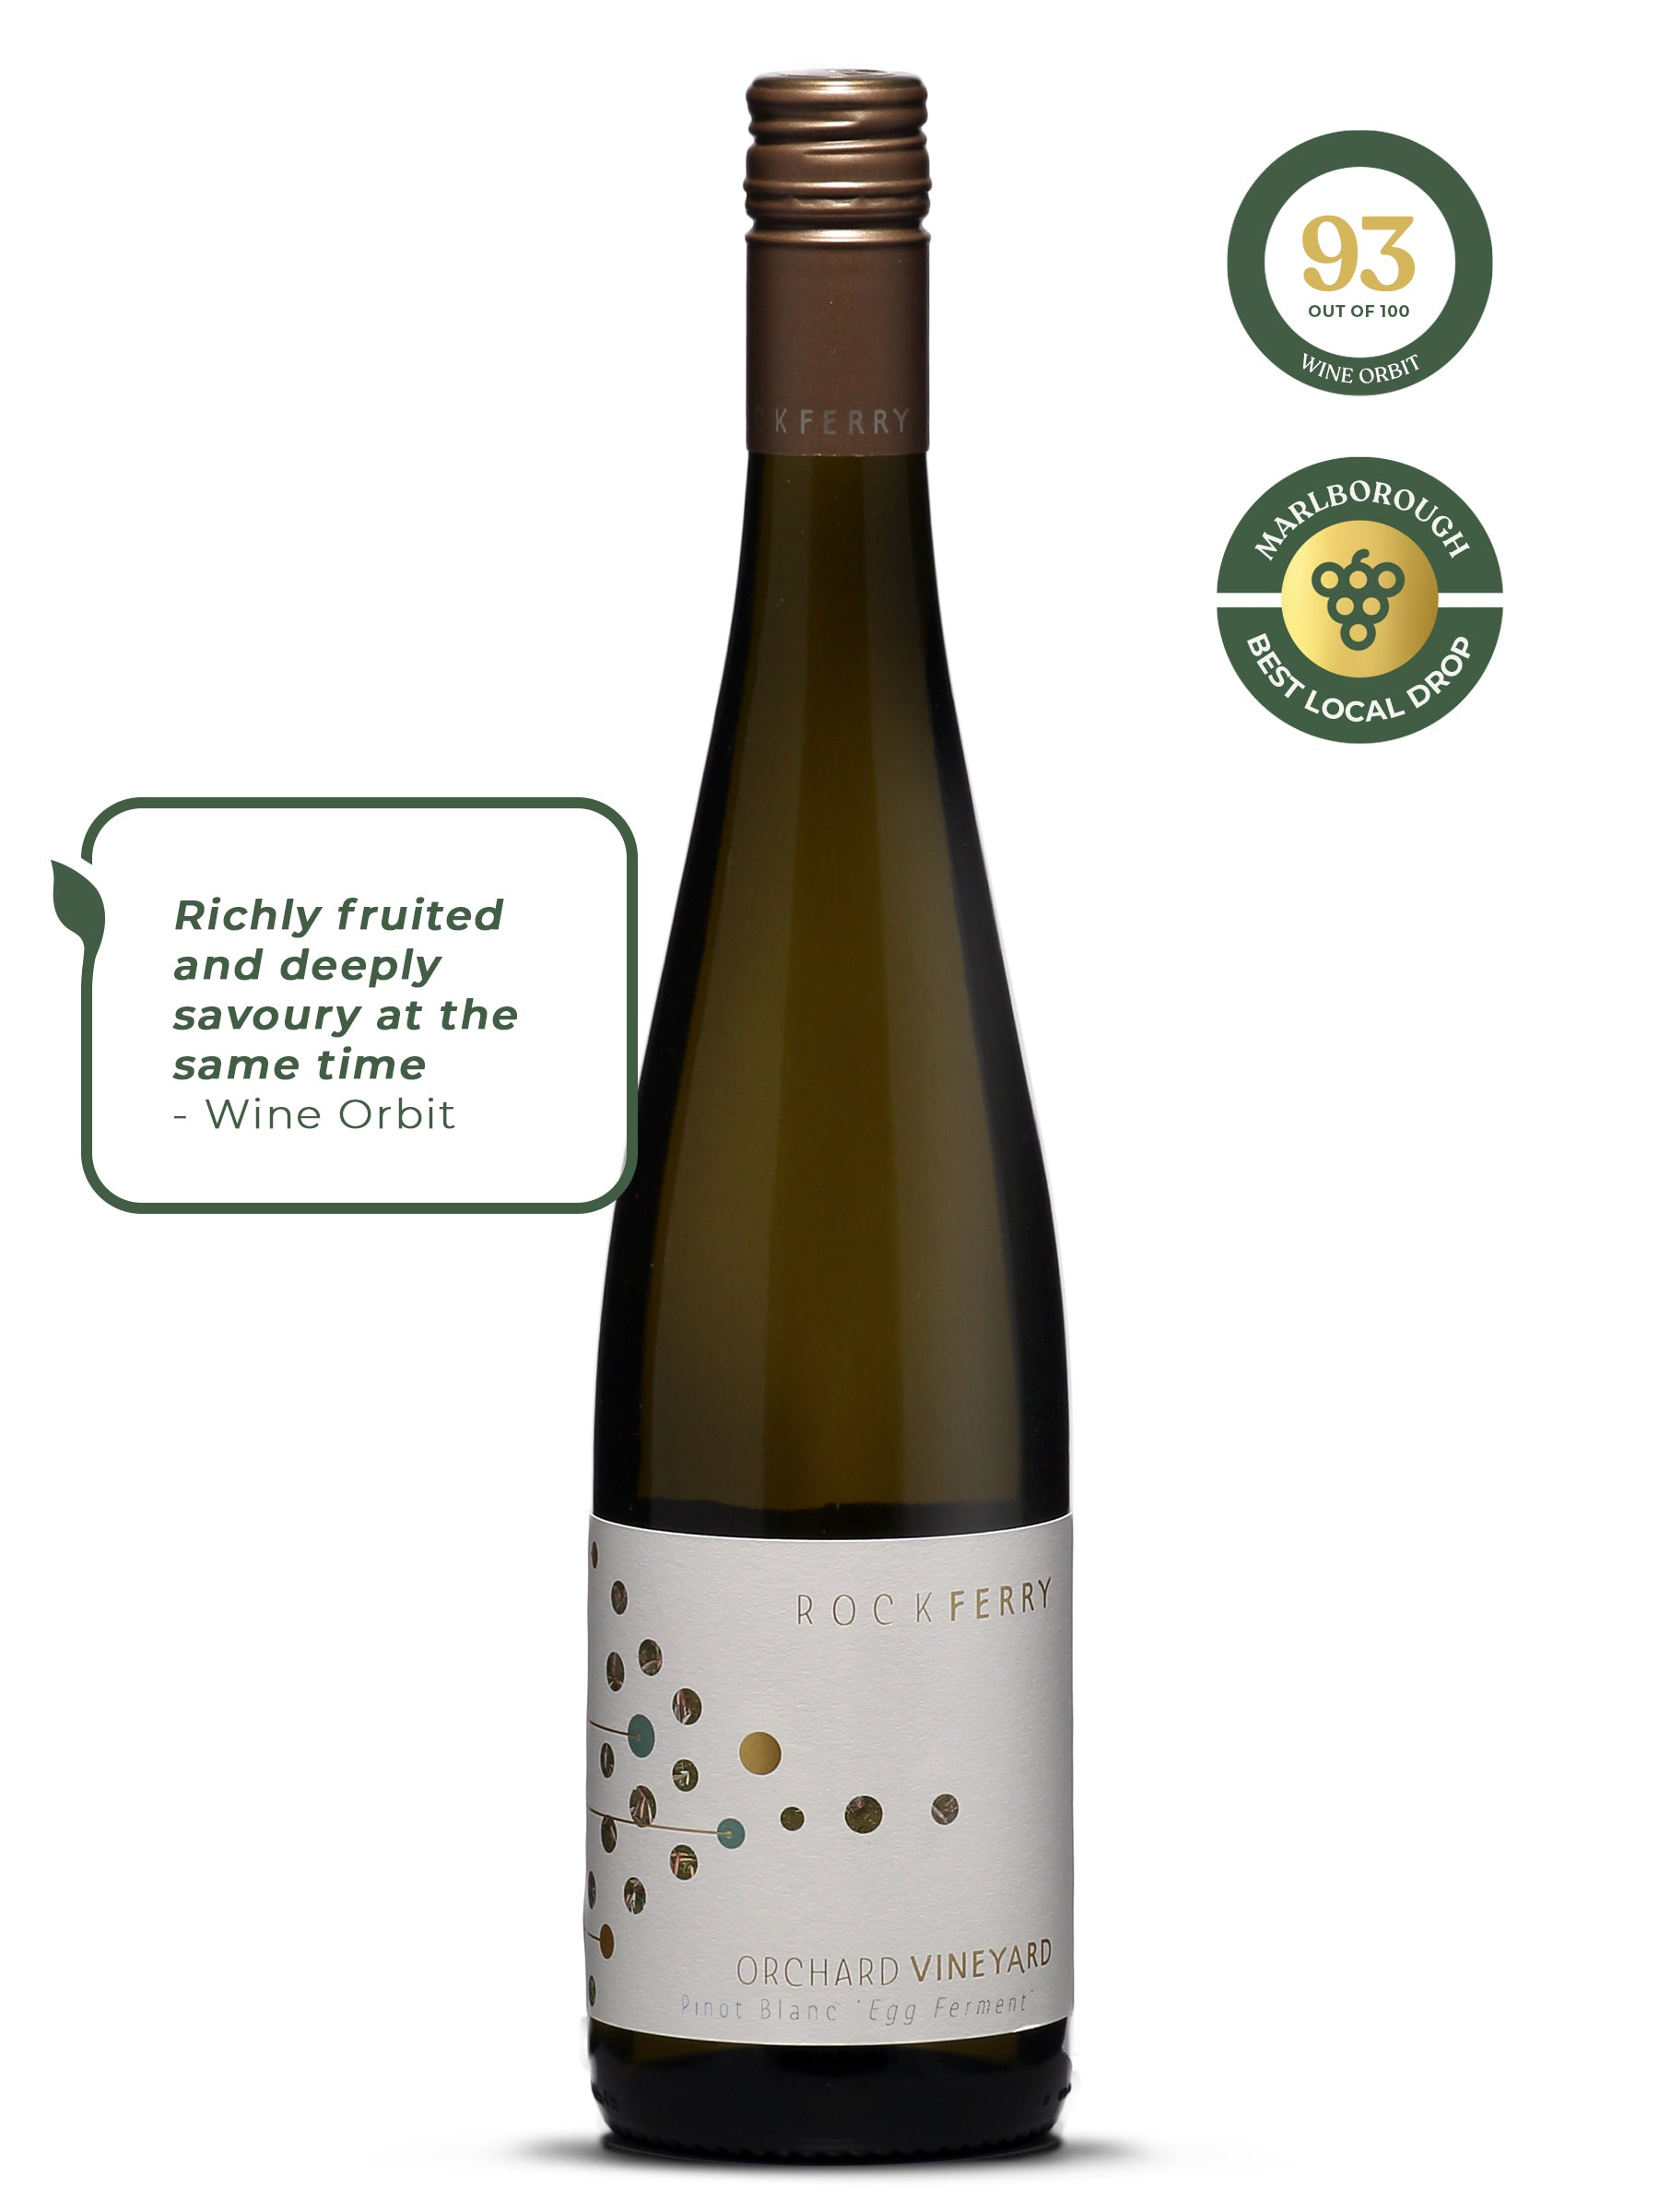 Rock Ferry Orchard Vineyard Pinot Blanc 'Egg Ferment' 2017